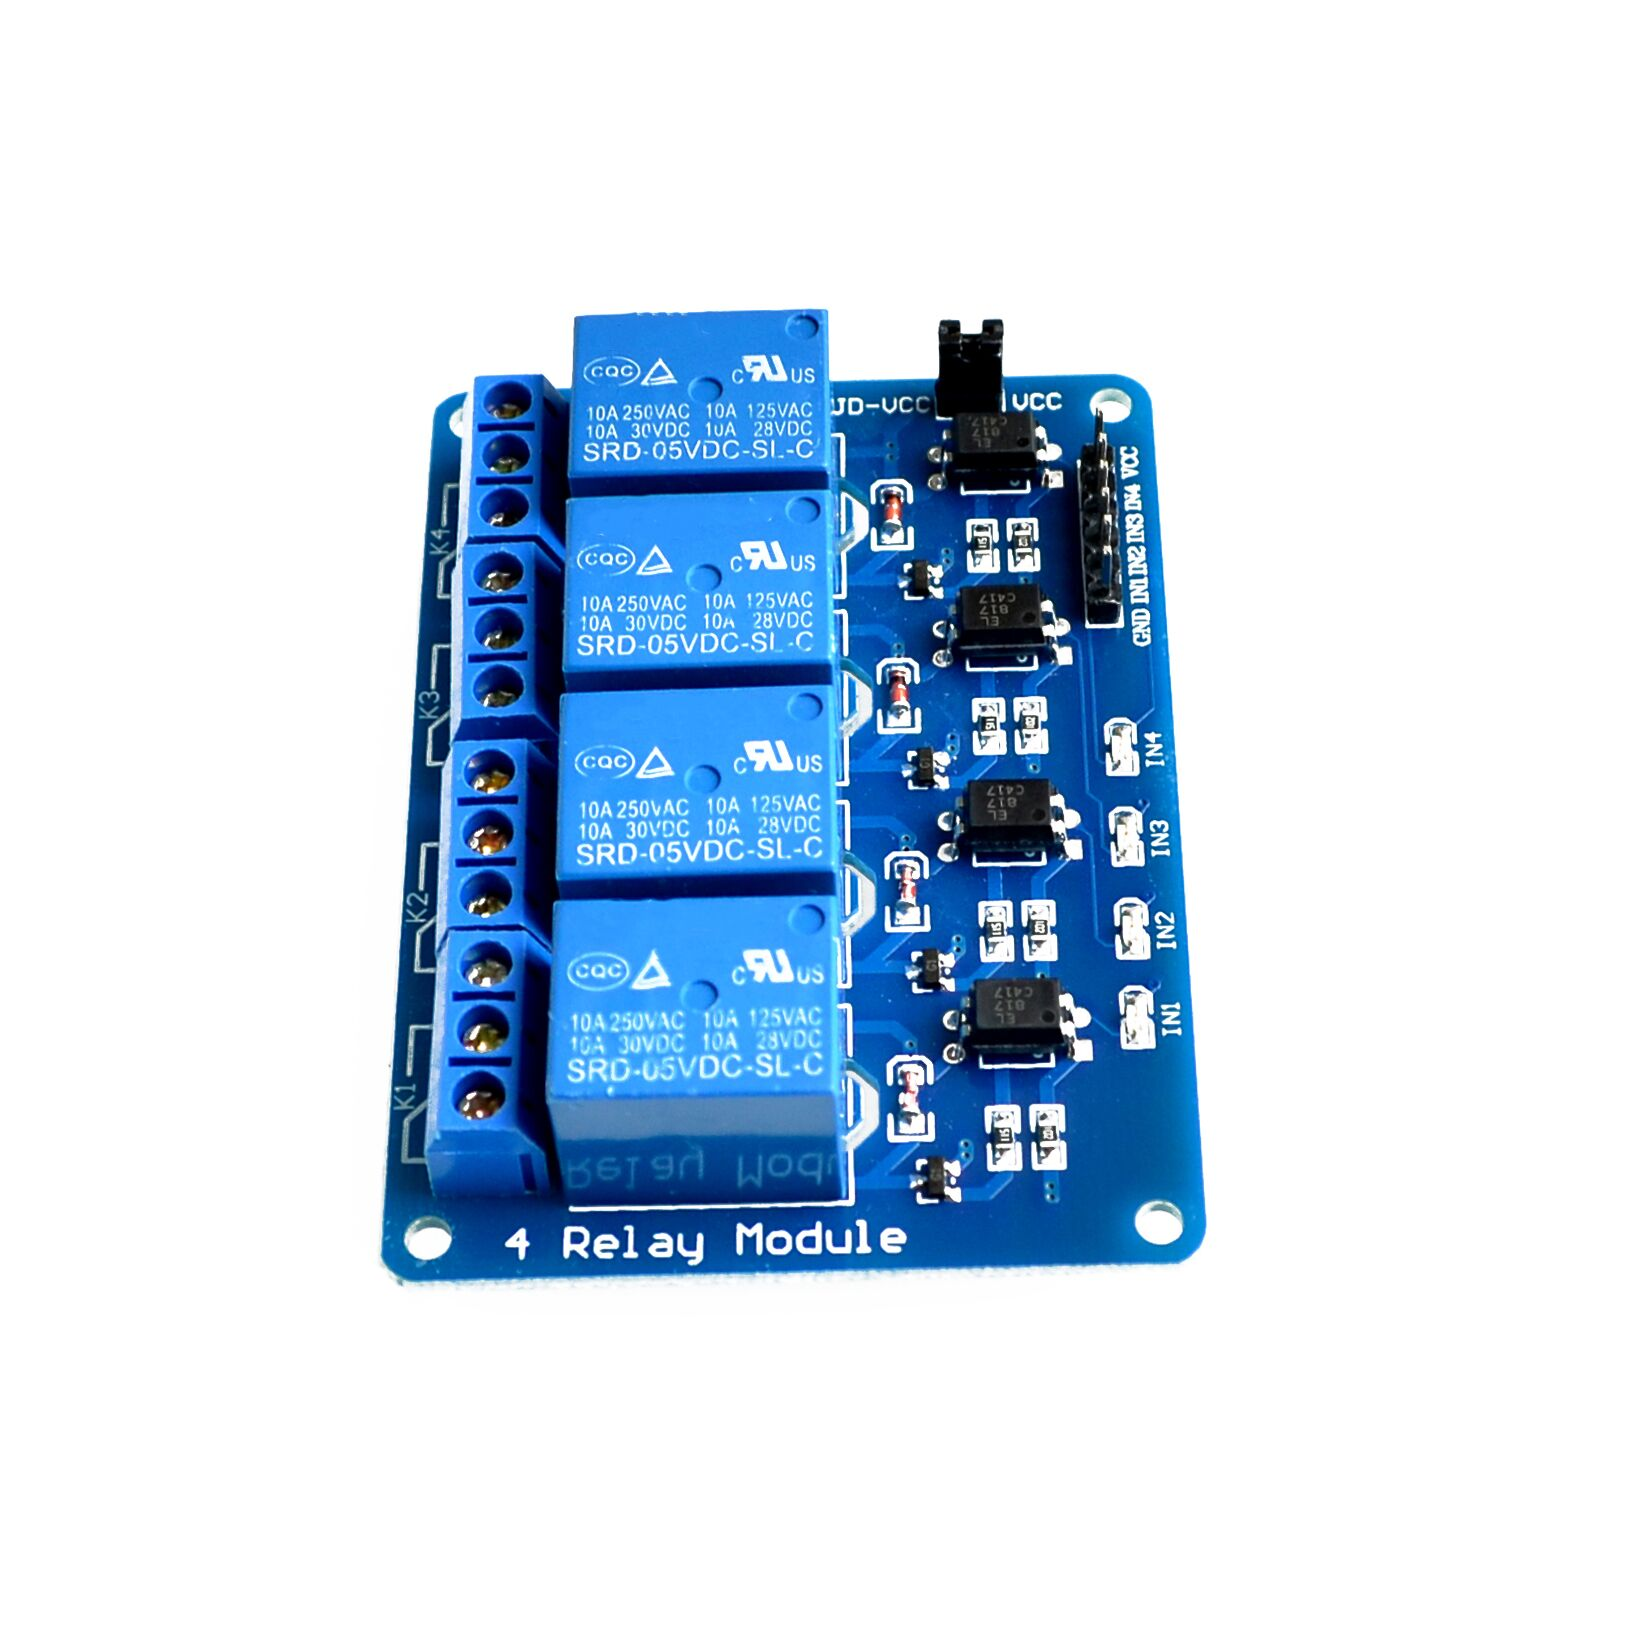 2pc RPI 4 Channel Relay Shield Board Module 5V Relay Shield for Raspberry Pi fe4239b534d9